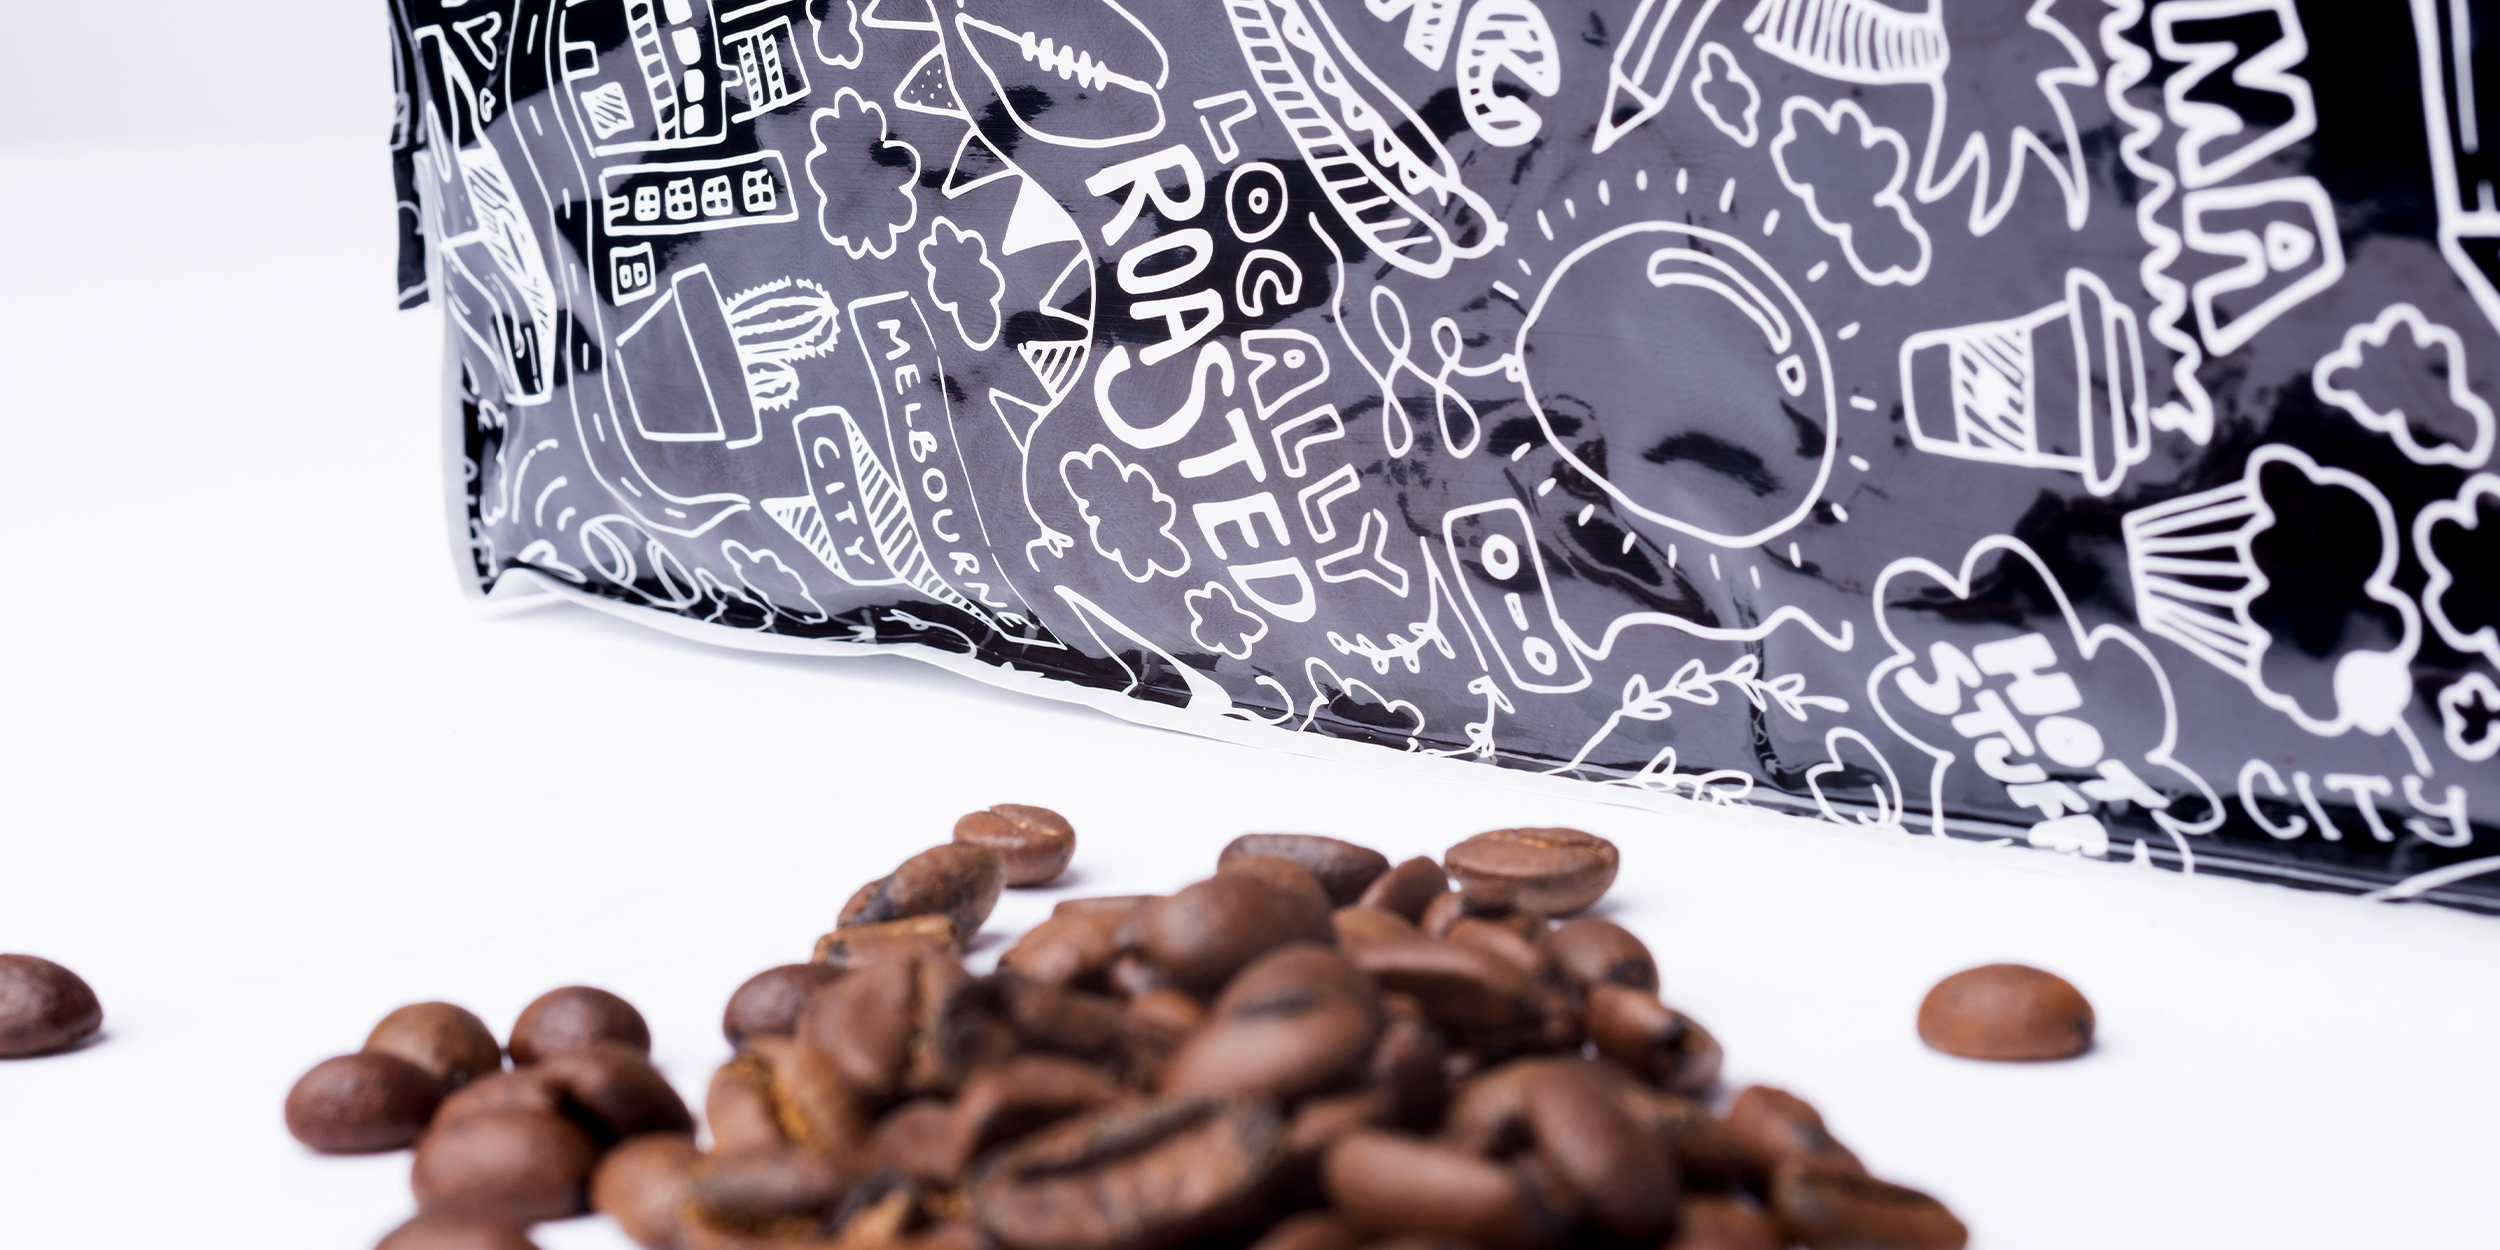 Inner Circle bespoke hand drawn pattern on packaging close-up with coffee bean background